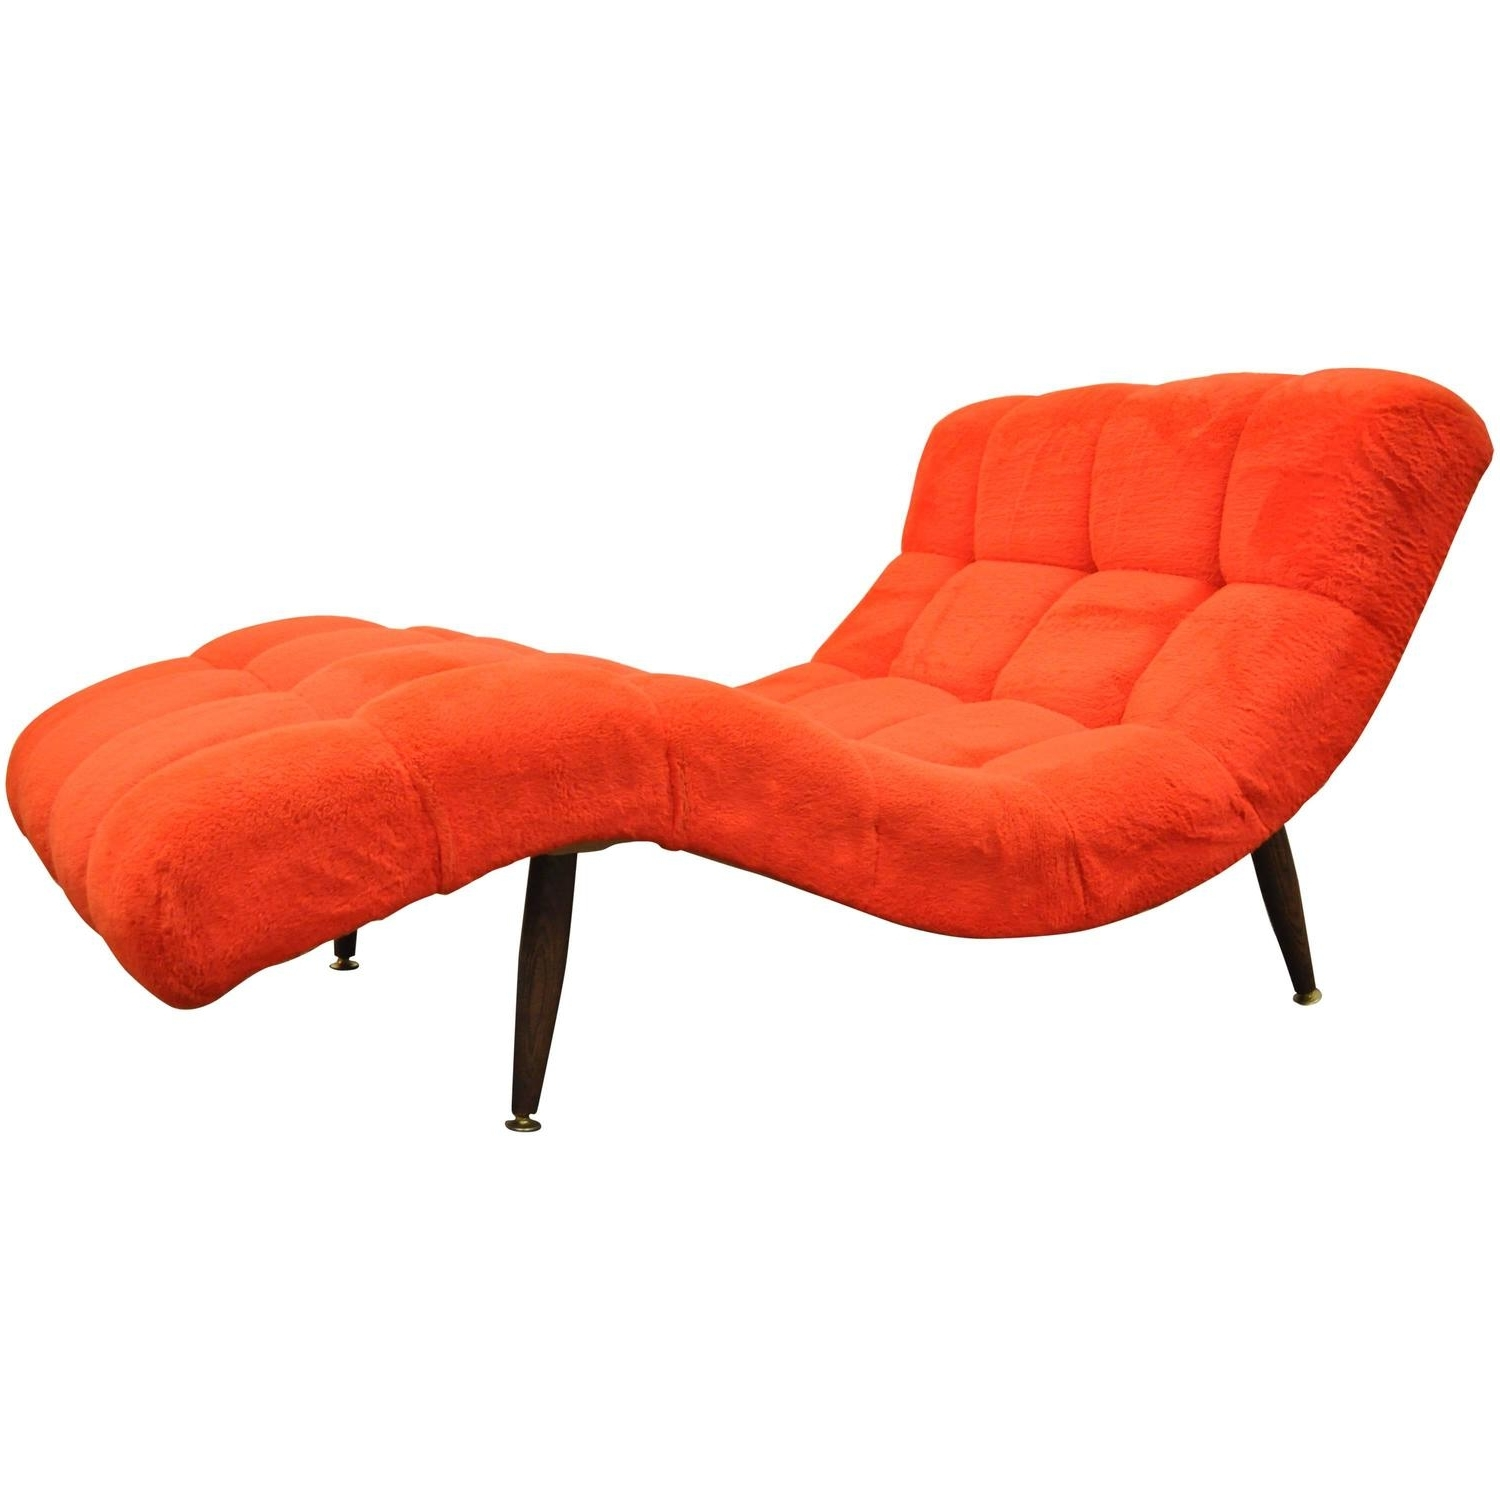 Vintage Mid Century Modern Double Wide Wave Chaise Lounge For Sale In Famous Mid Century Chaises (View 13 of 15)